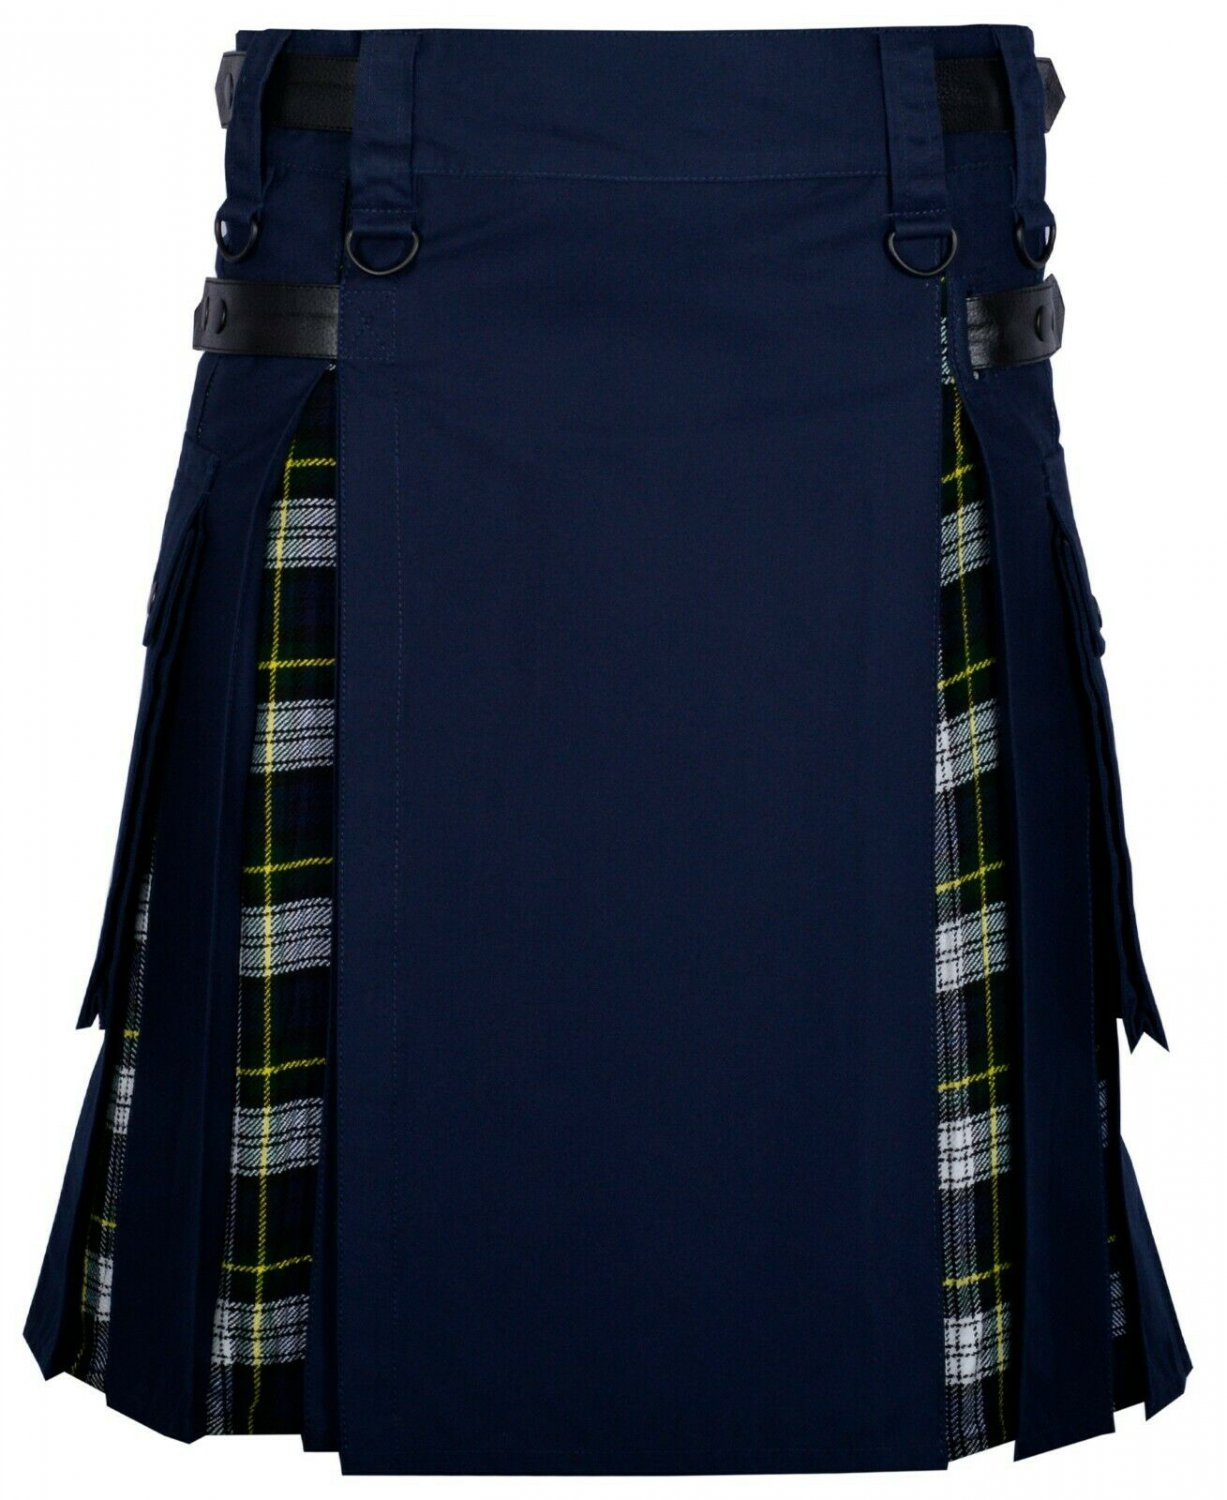 58 Size Navy Blue Cotton-dress Gordon tartan Scottish Utility Cargo Hybrid Cotton Kilt For Men